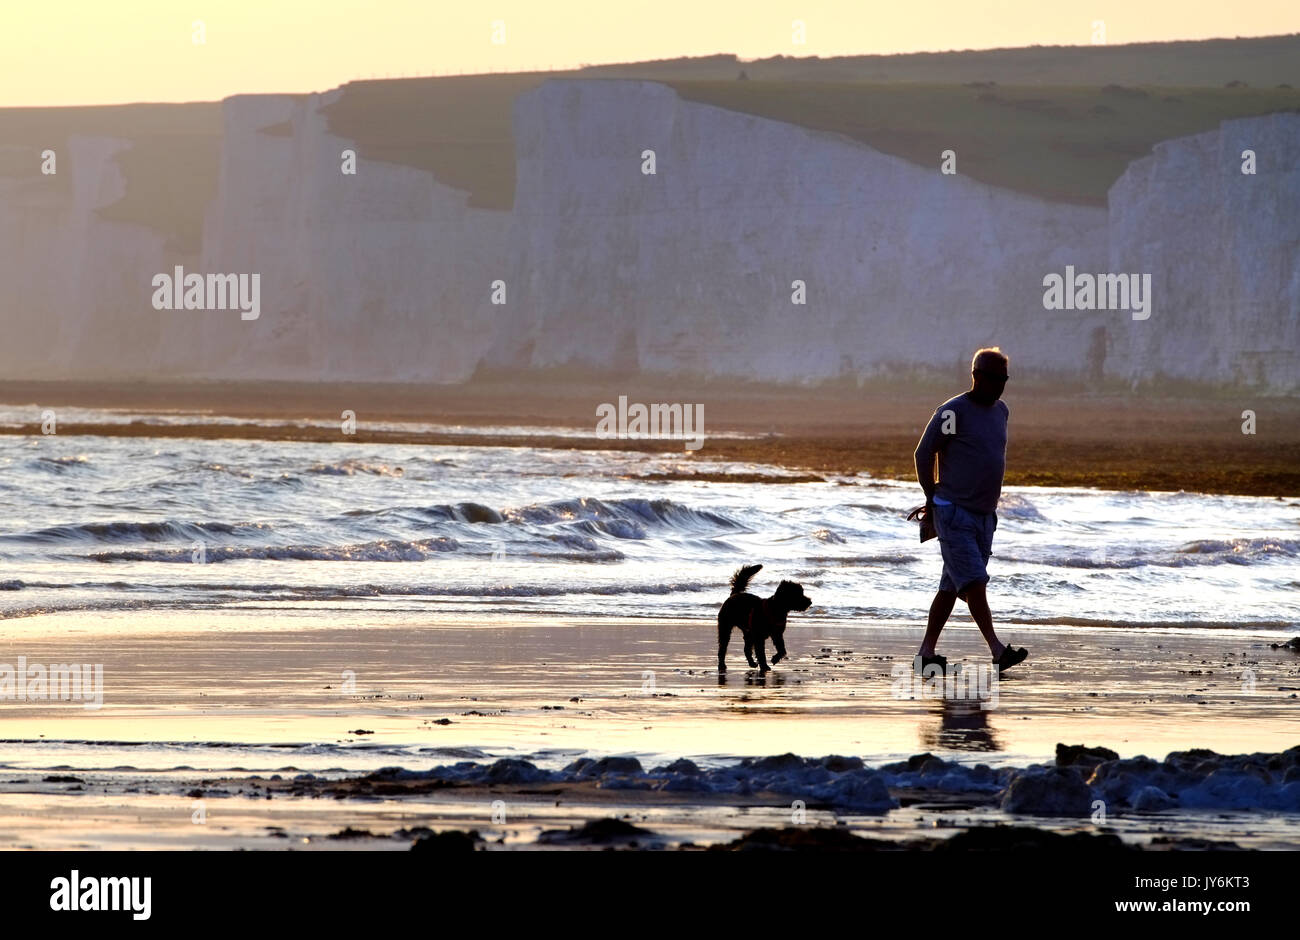 Man and his dog walking on the beach near the iconic Seven Sisters chalk cliffs, East Sussex. - Stock Image